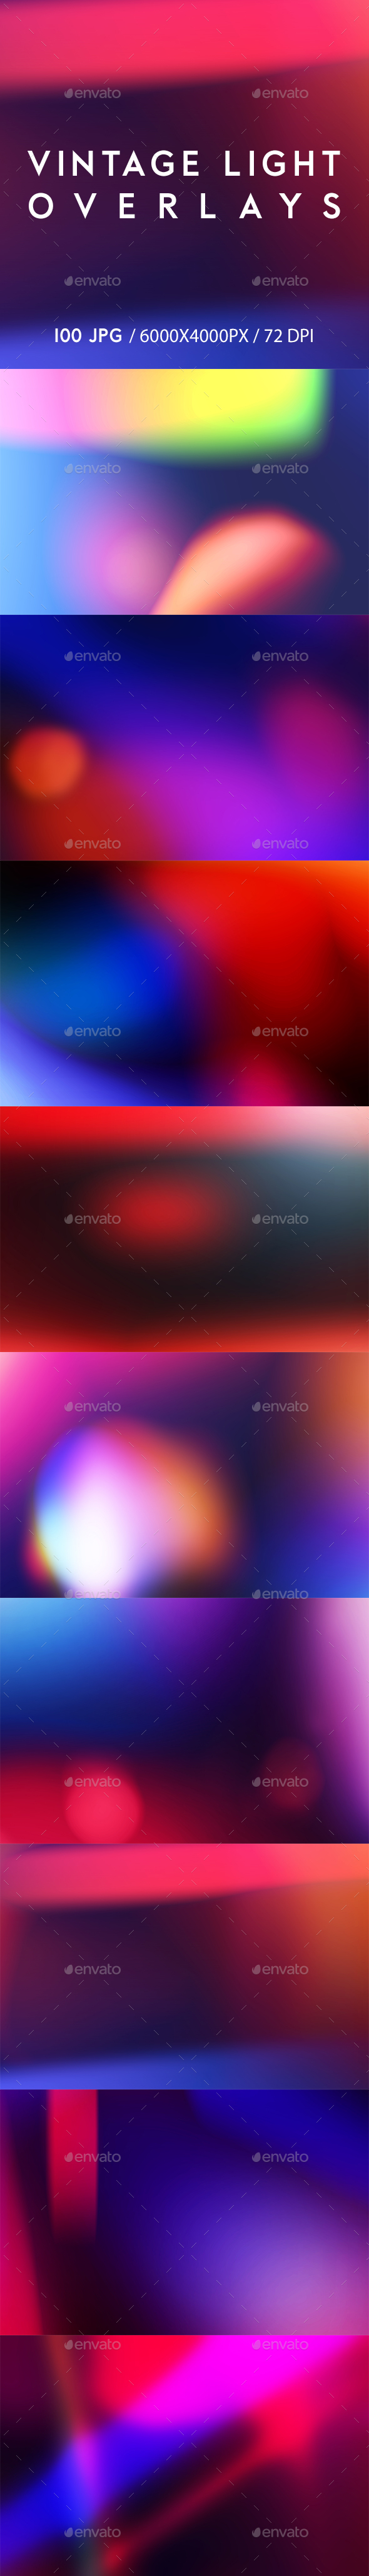 100 Vintage Light Overlays - Abstract Backgrounds